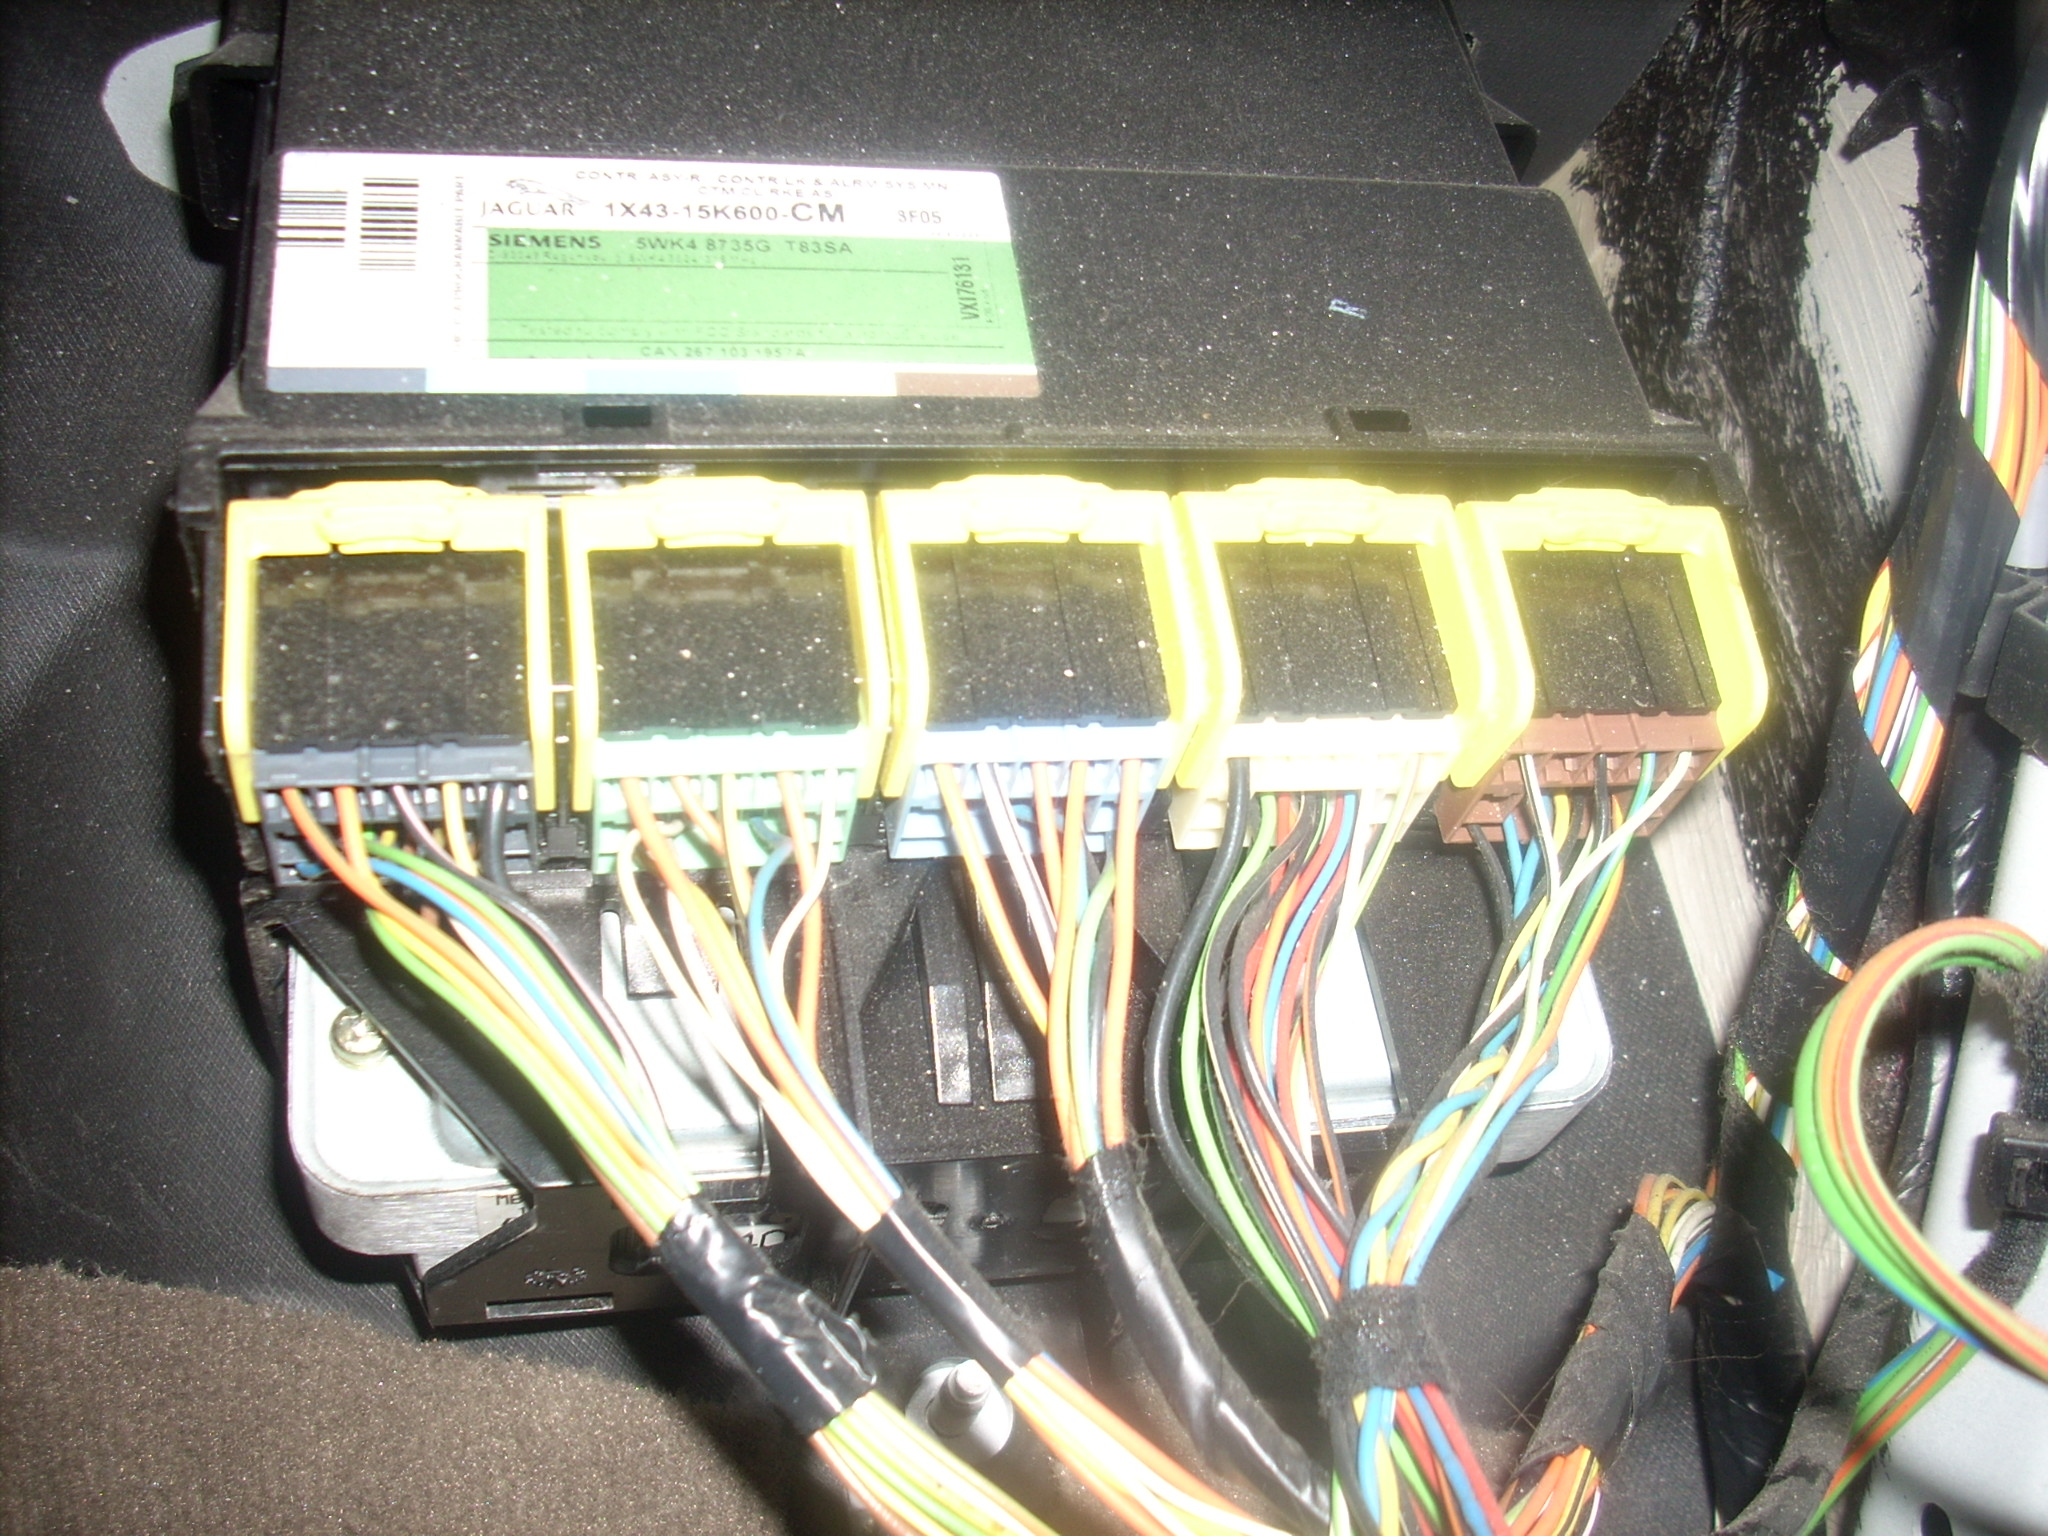 I purchased a used ECU module on Ebay and would like to know